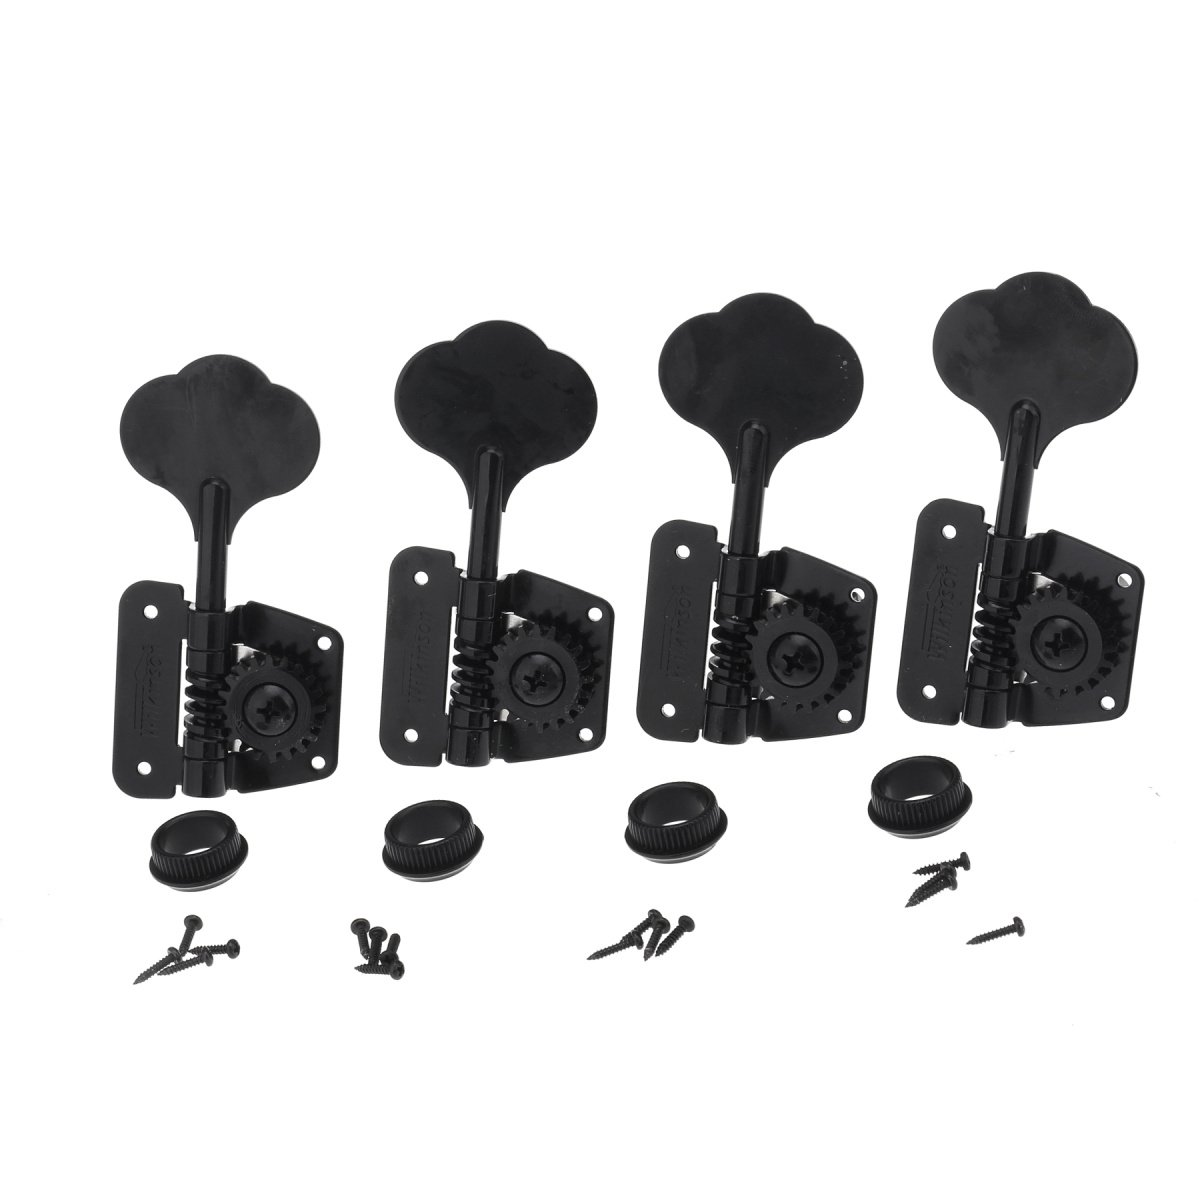 CHROME NEW 20:1 Gear Ratio 4-In-Line Import Bass Tuning Keys 4